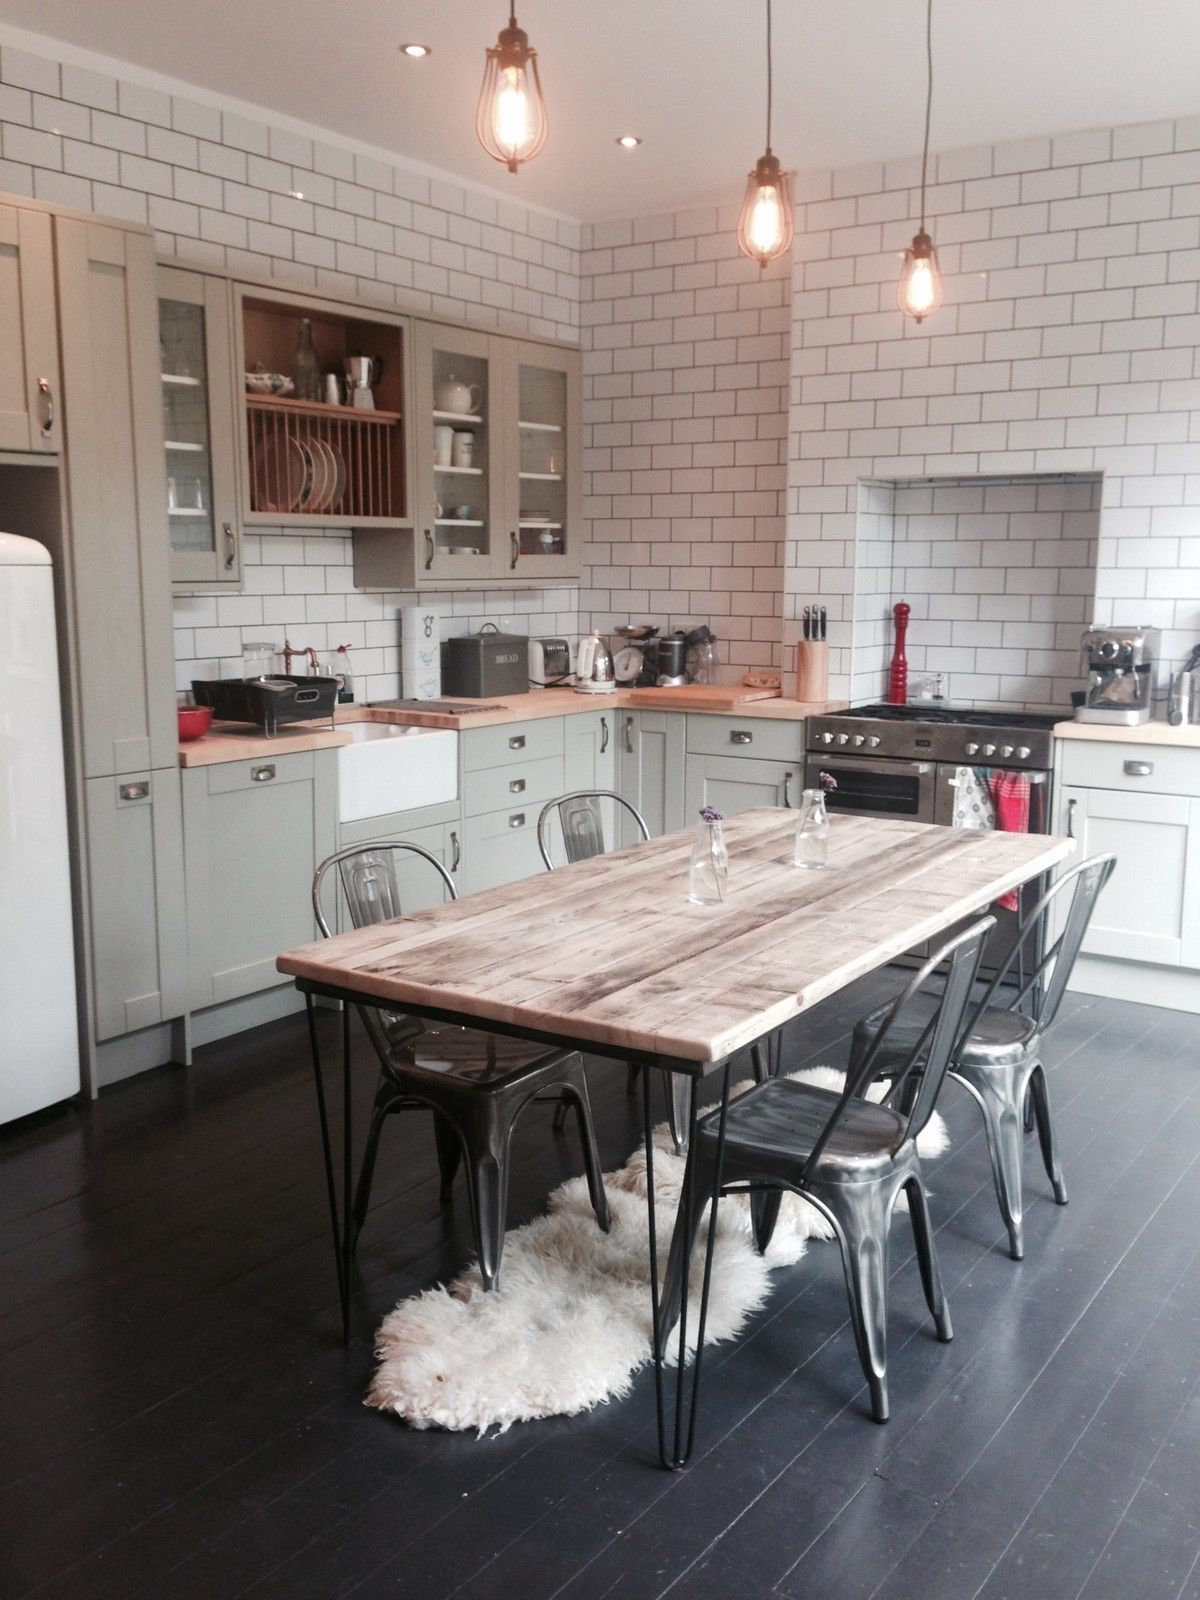 Vintage Industrial Hairpin Leg Rustic Reclaimed Plank Top Dining Interesting Dining Room Ideas Uk Design Decoration